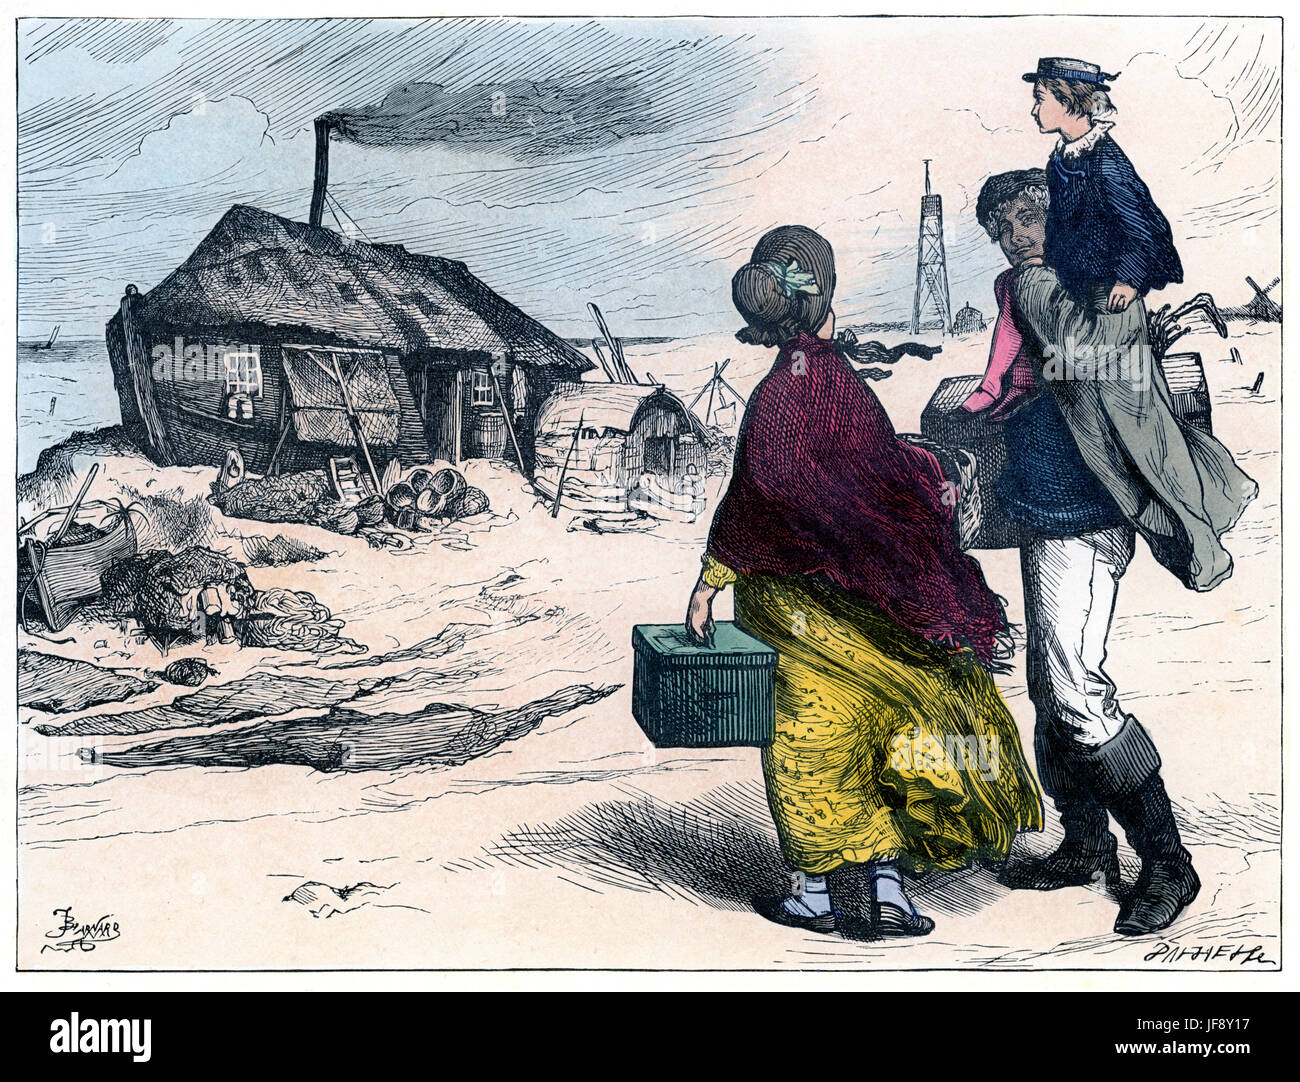 character peggotty stock photos character peggotty stock images  david copperfield novel by charles dickens 7 1812 9 1870